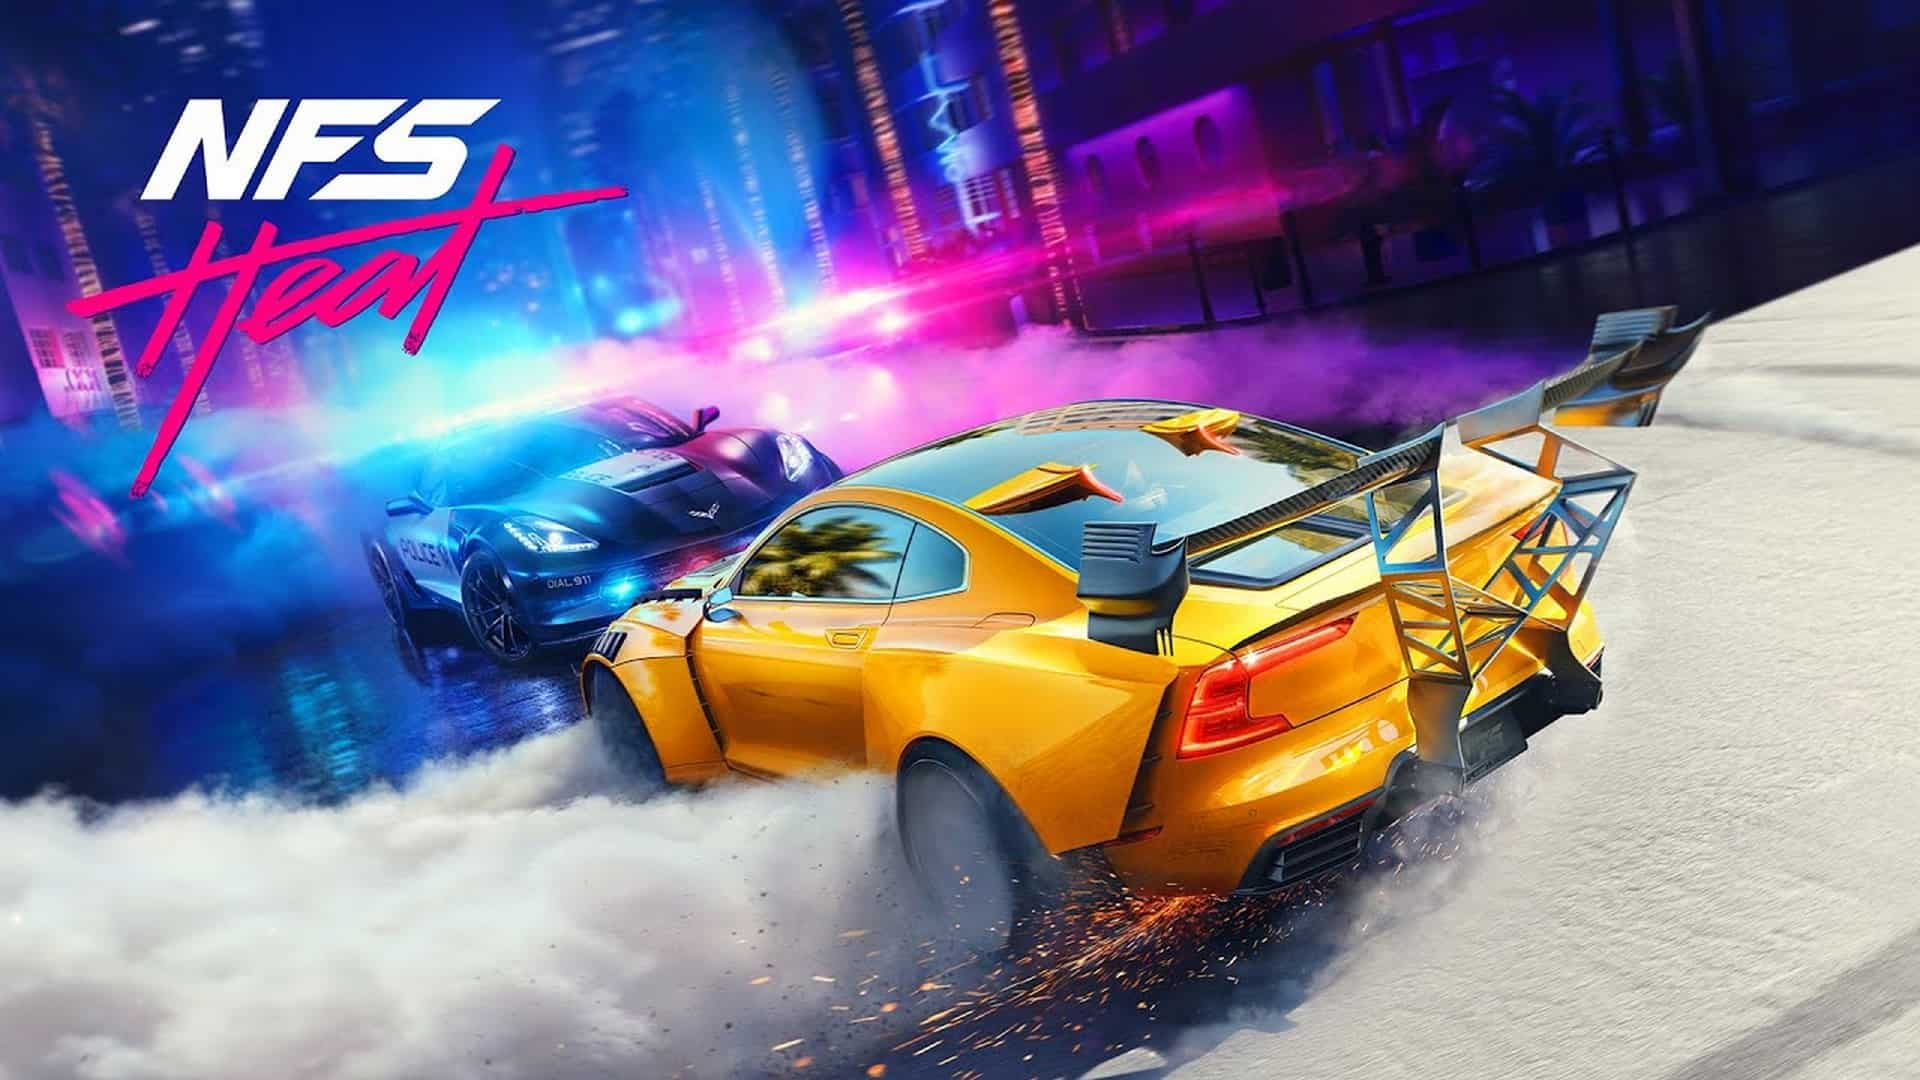 Race Into The Night In Need For Speed Heat, Available Worldwide Now